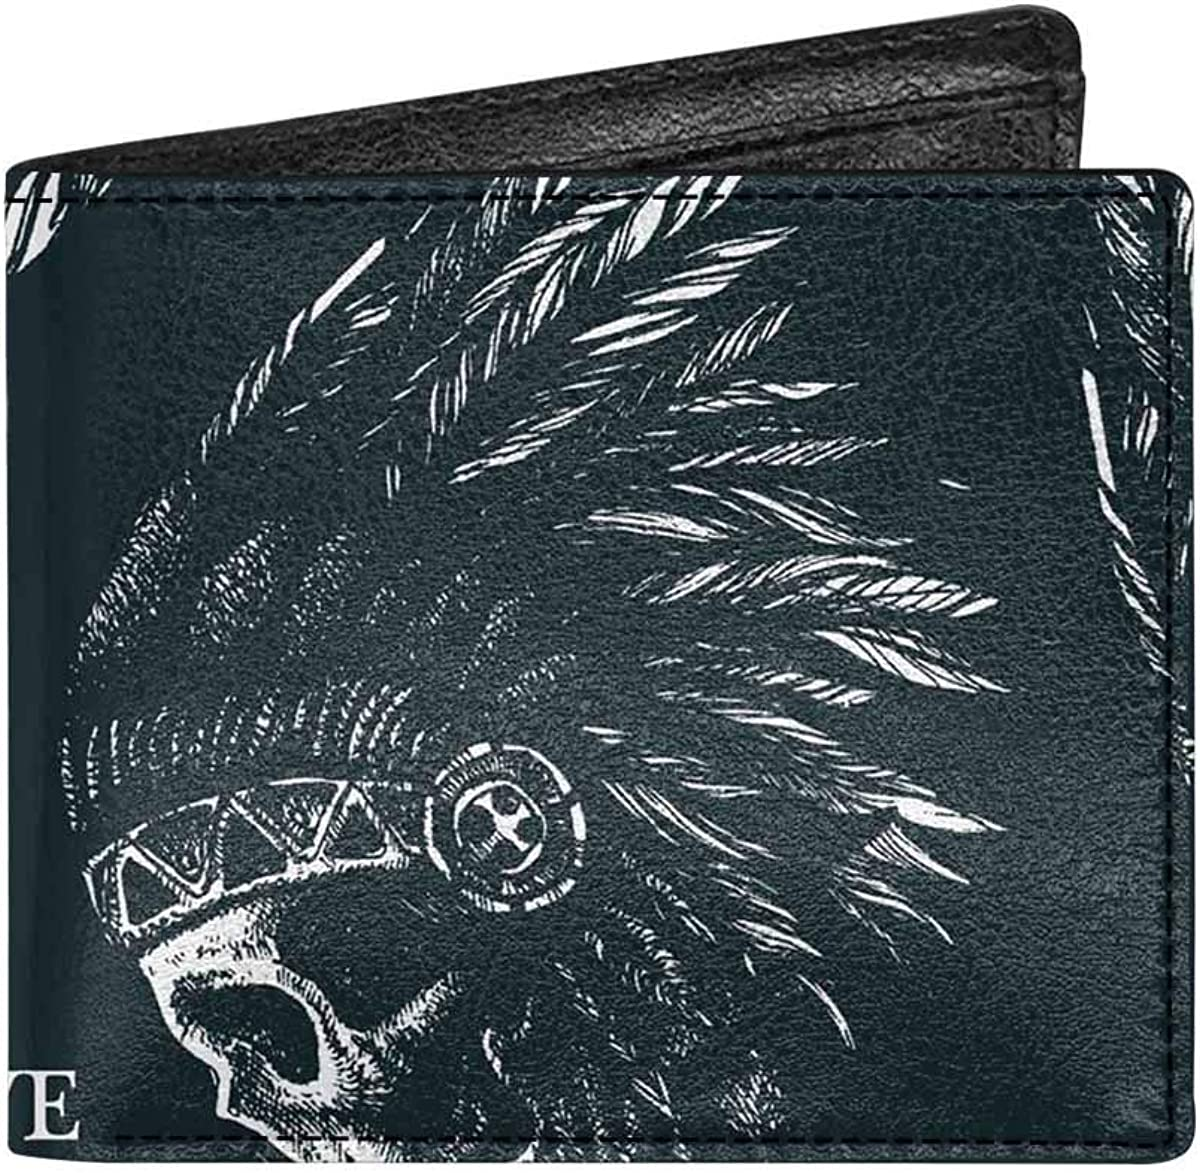 INTERESTPRINT Native Skull Indian Chief Bifold Wallet PU Leather Wallet Coin Purse for Men and Women